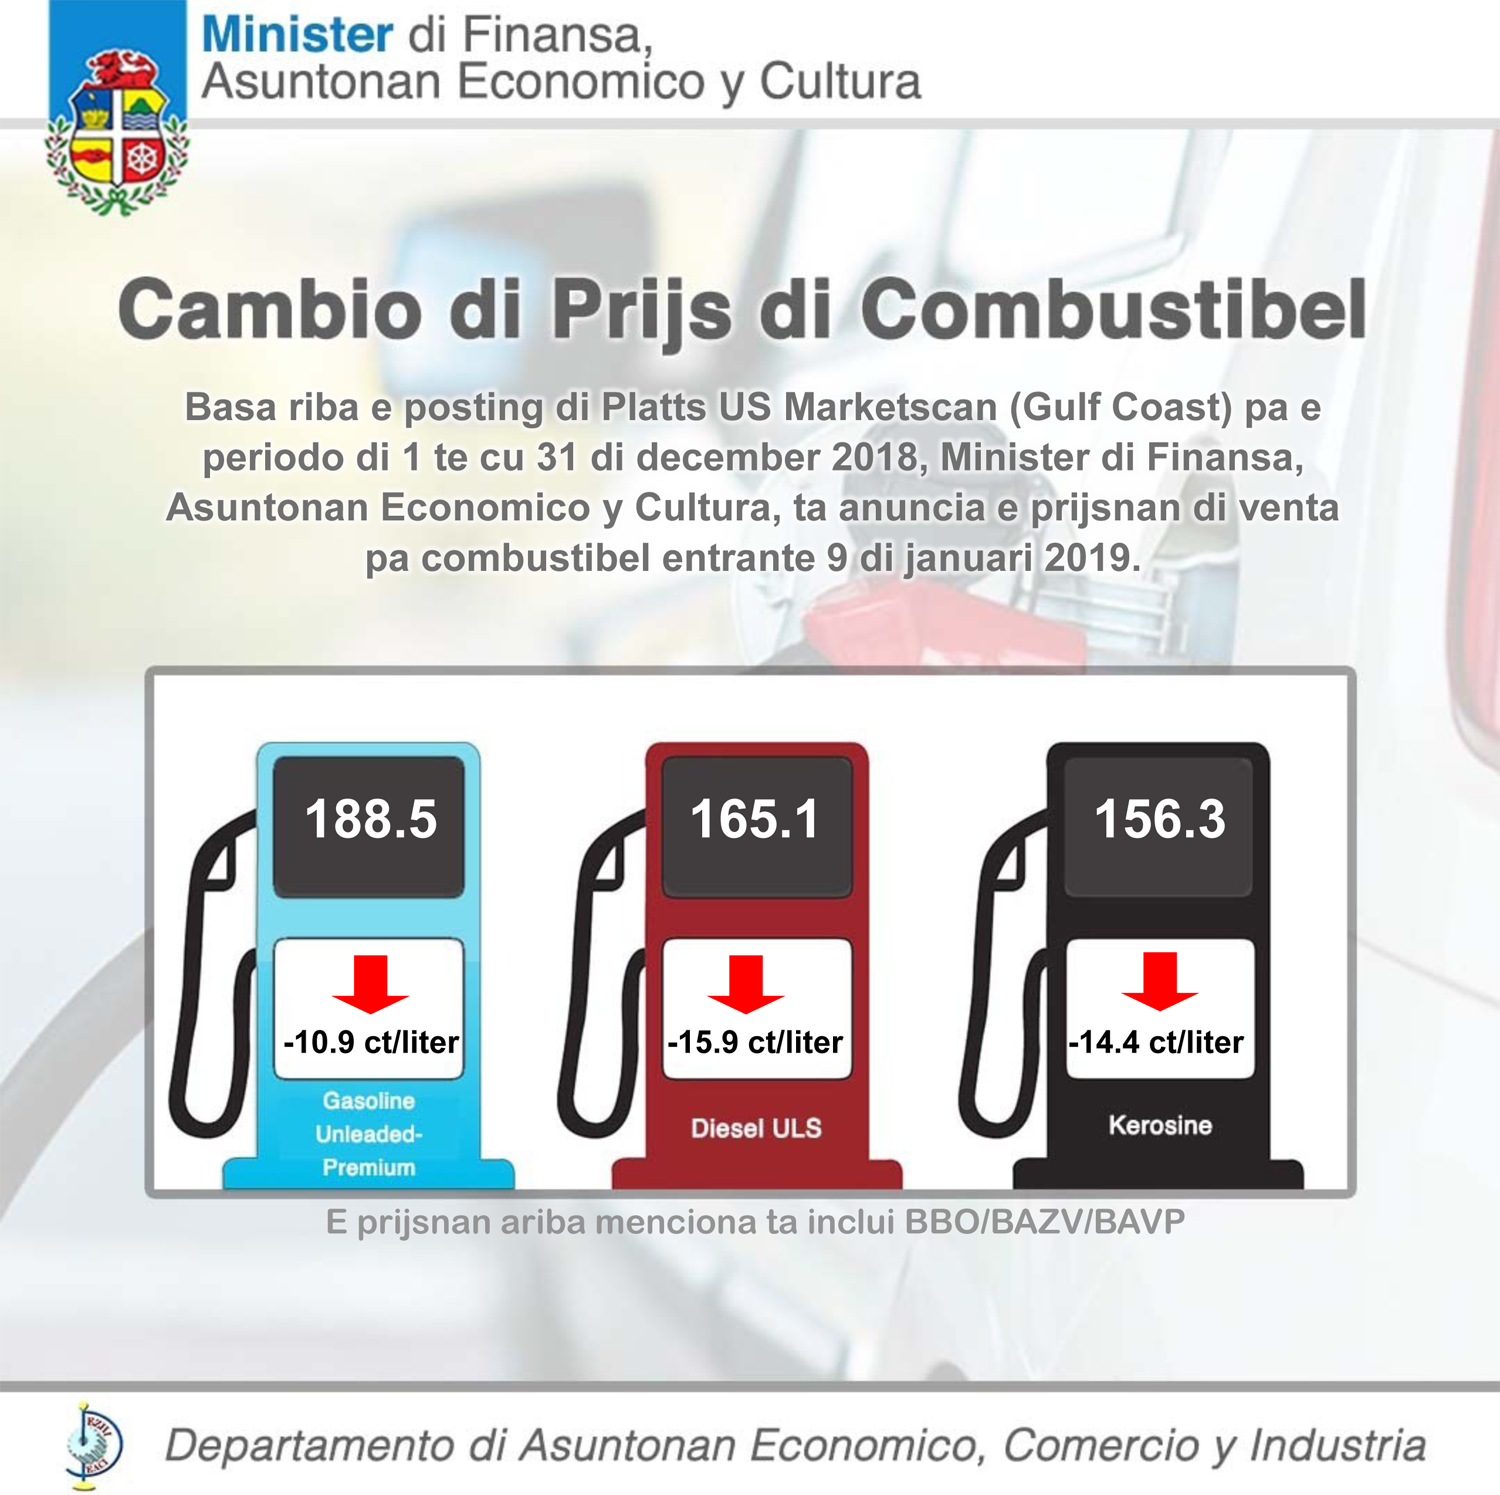 New gasoline price publication | The Department of Economic